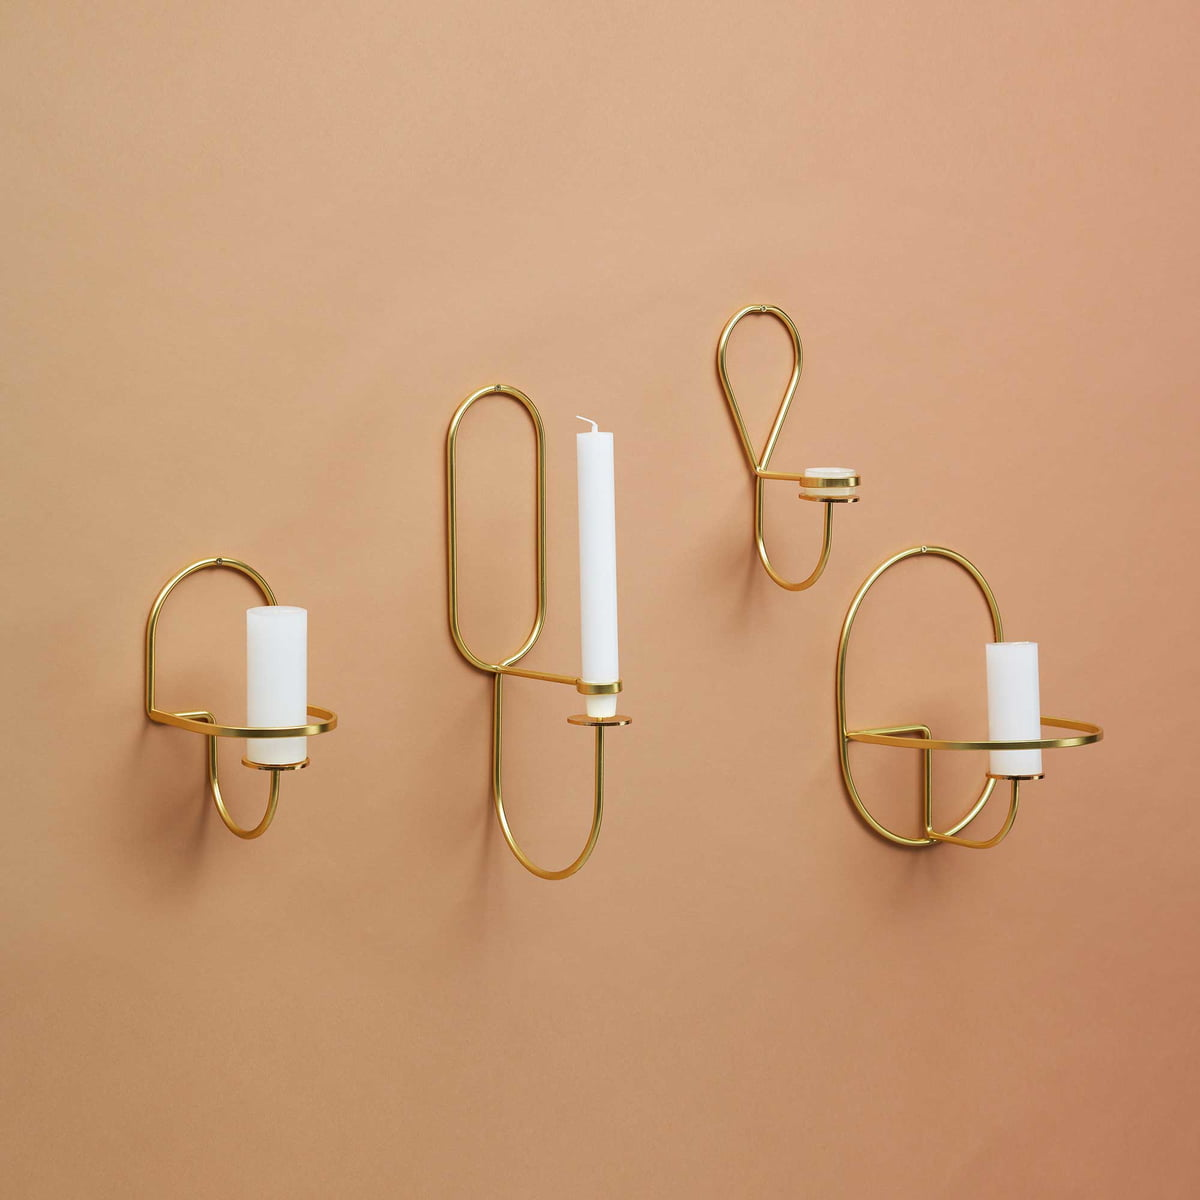 Lup wall tealight holder by Hay in the shop